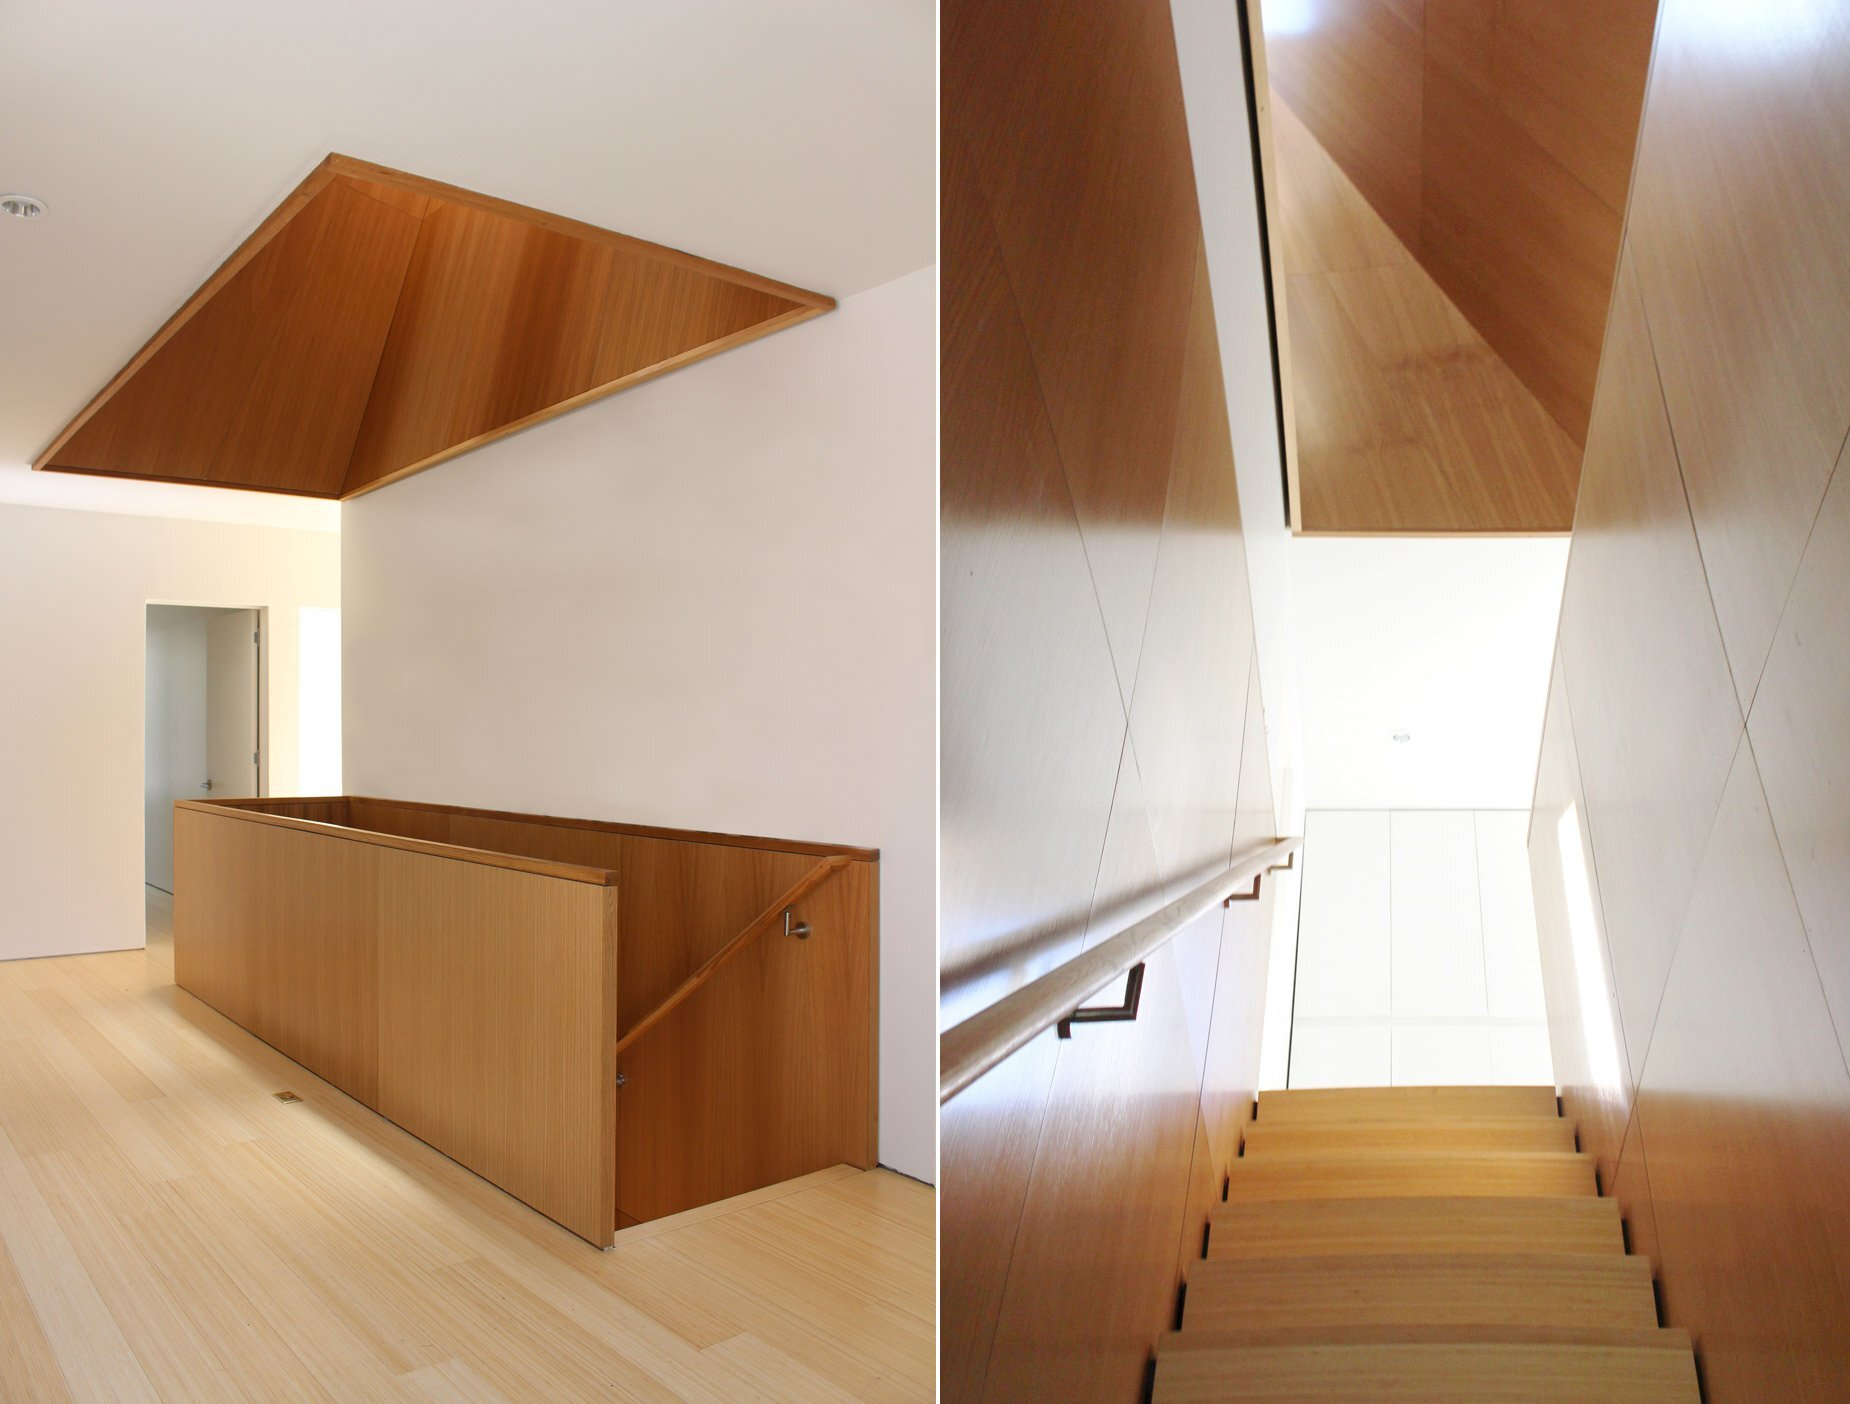 Small House - Jim Vlock Building Project - Yale School of Architecture - New Haven - Staircase - Humble Homes